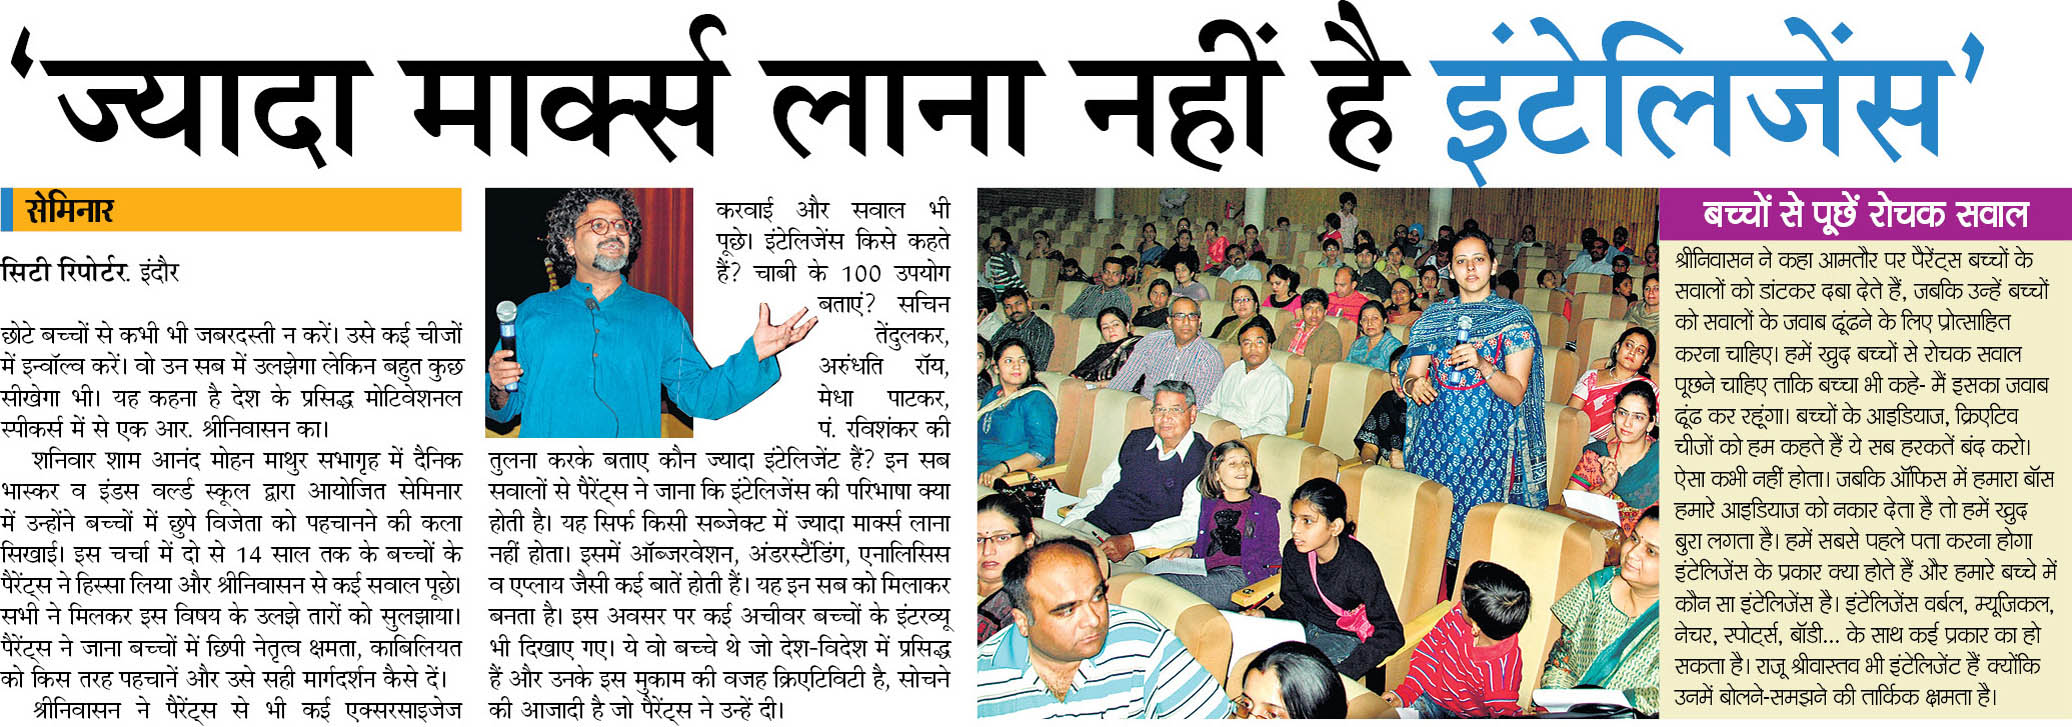 The coverage of the session in Dainik Bhaskar